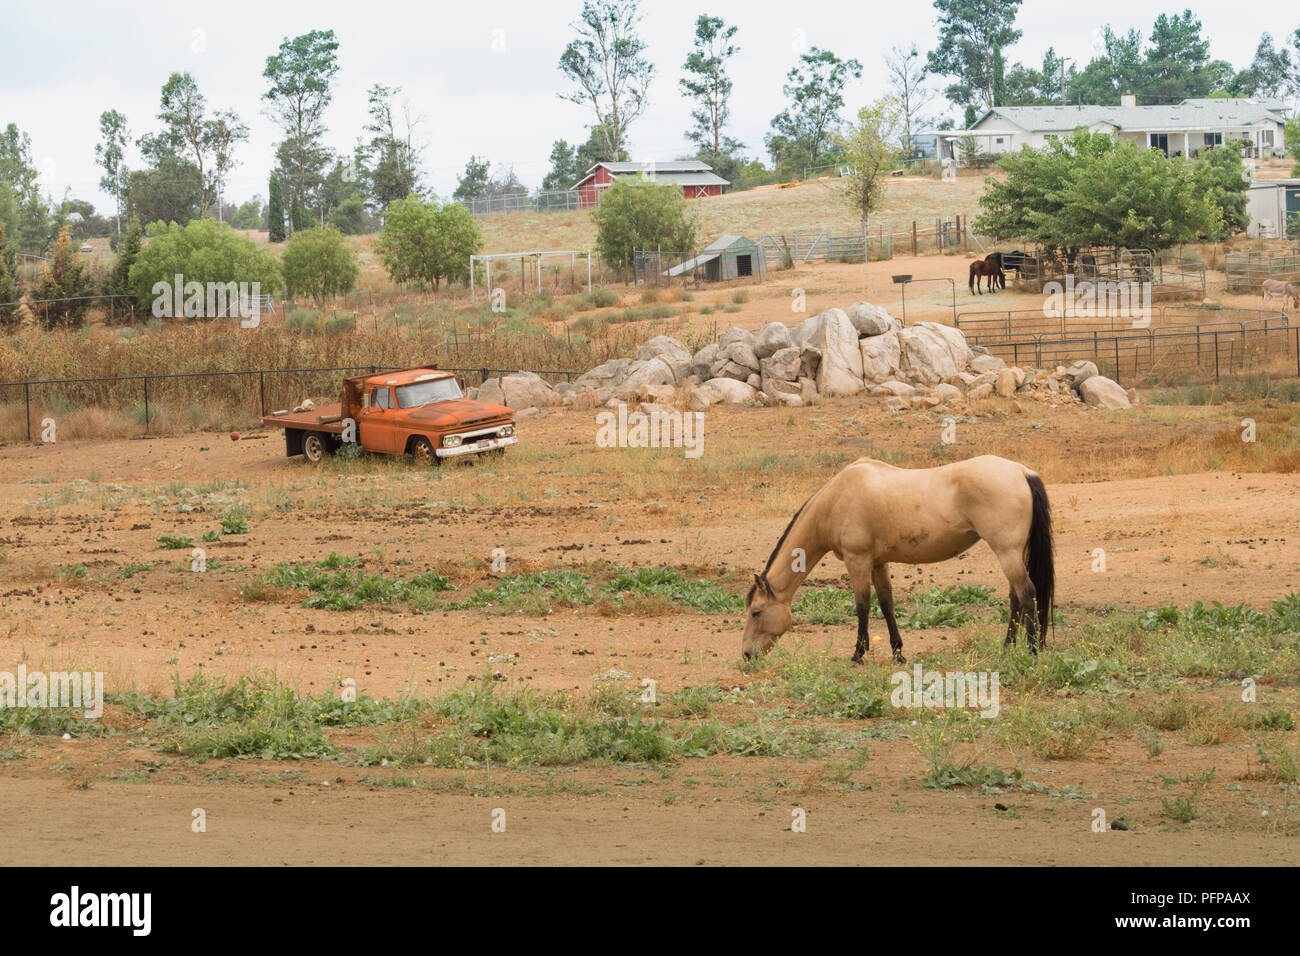 Rural old time vintage field landscape of an old orange flatbed truck with a bay horse in foreground, western farm lifestyle, peaceful scene - Stock Image